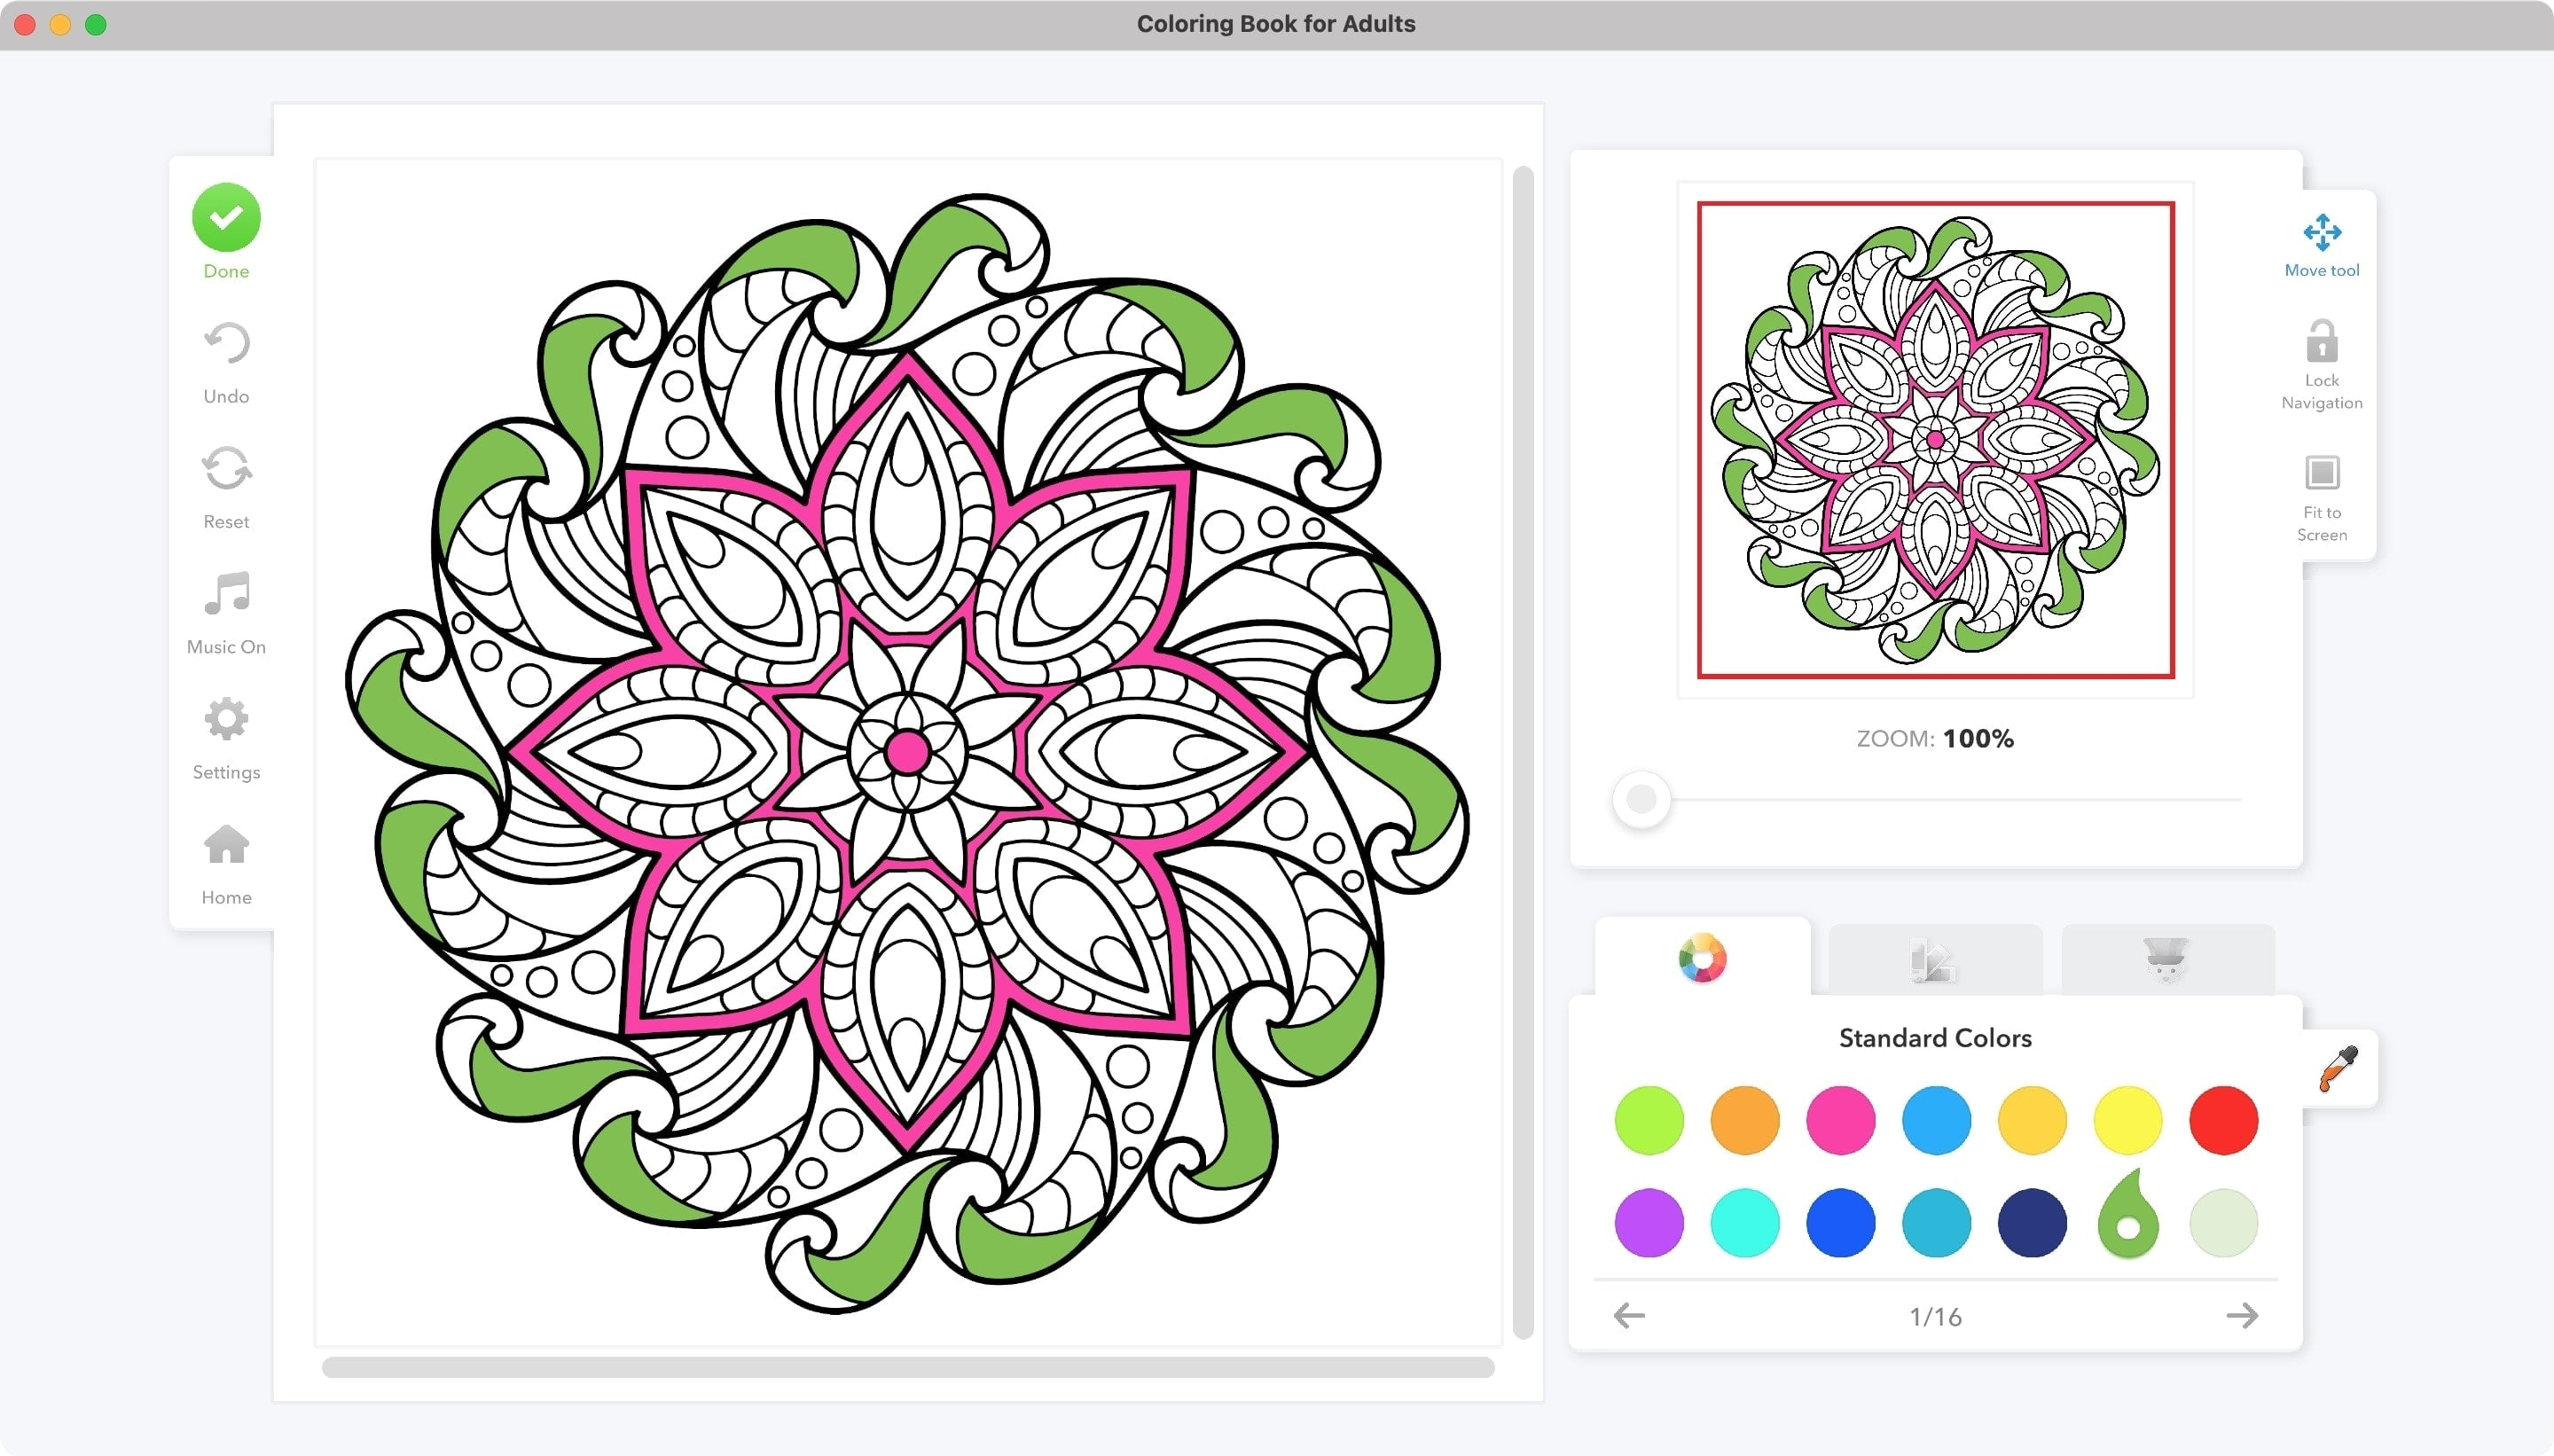 Epic Coloring Book for Adults on Mac